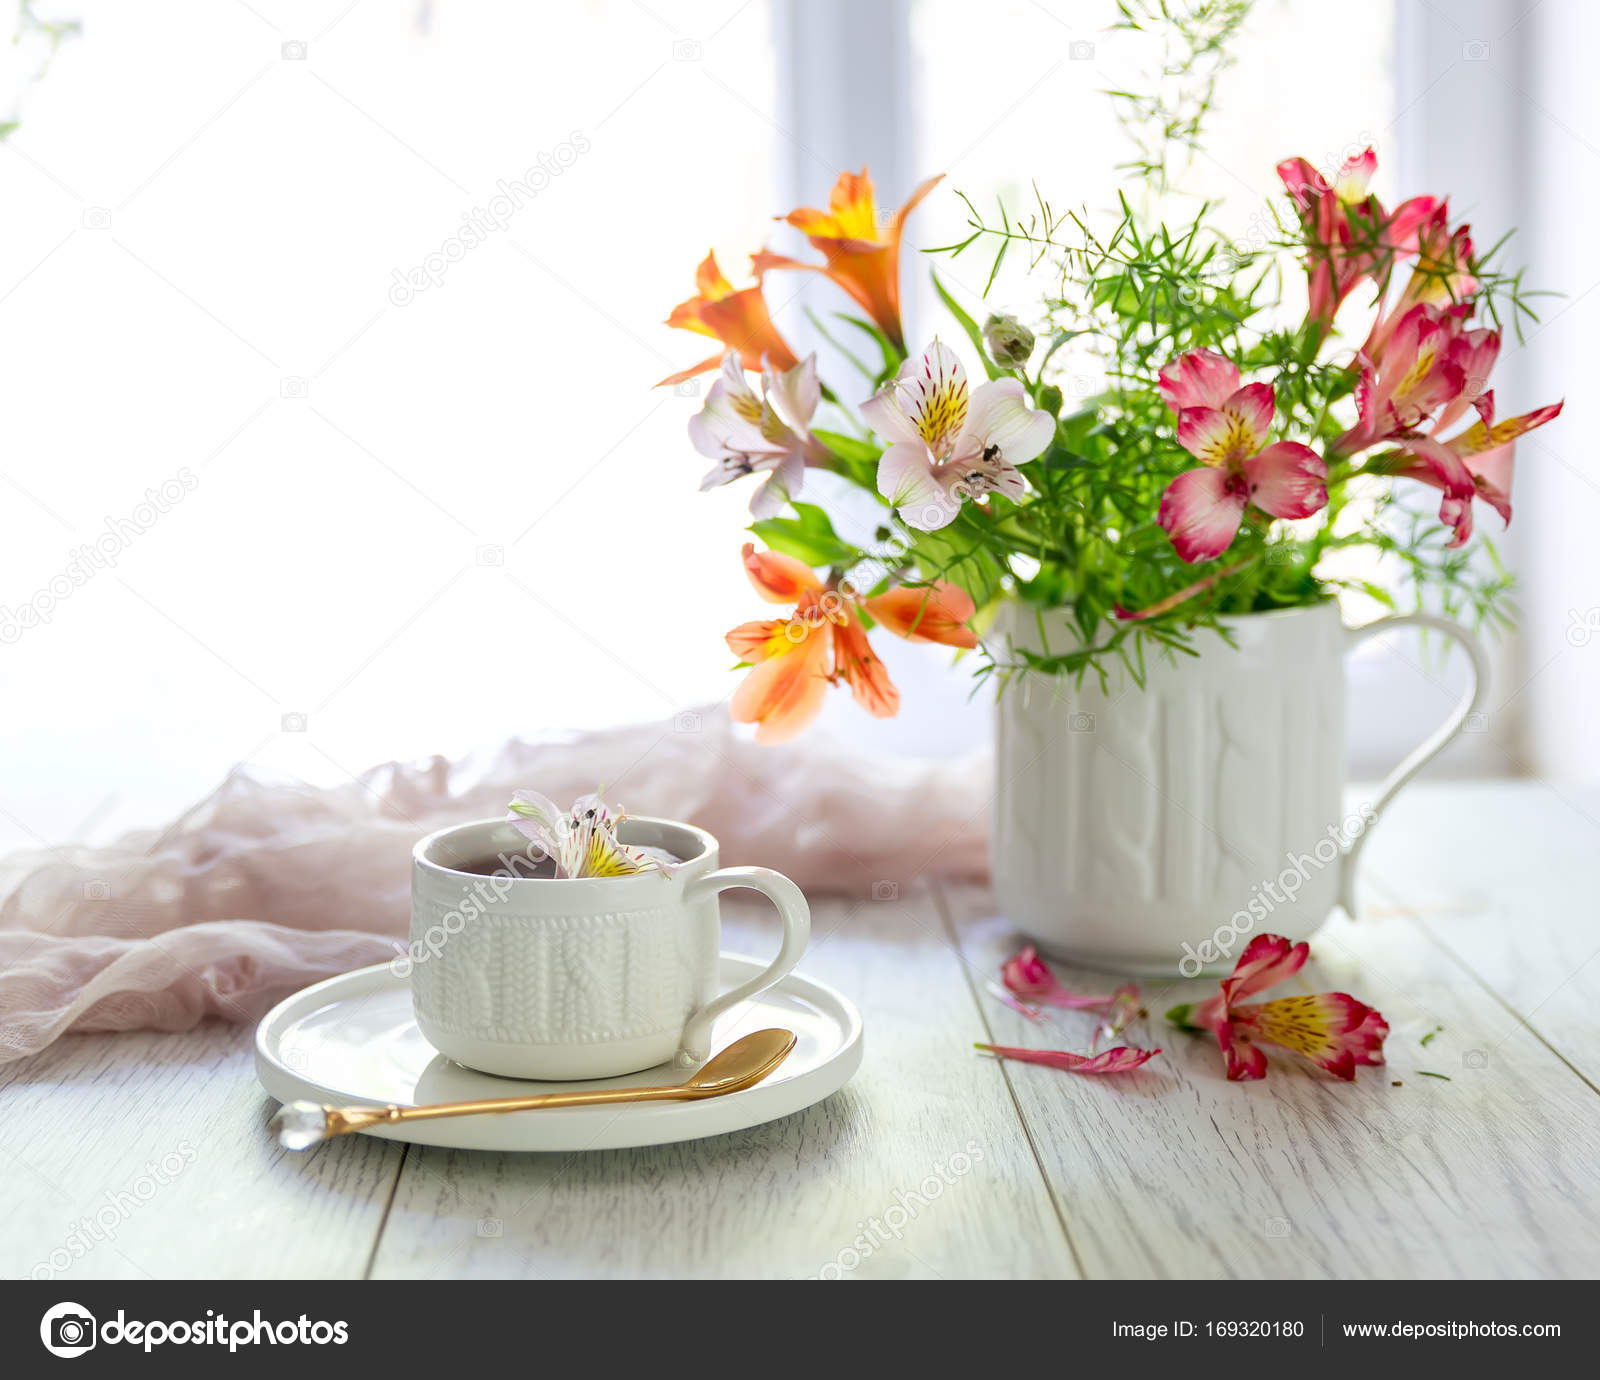 white cup with tea on the table flowers nearby stock photo